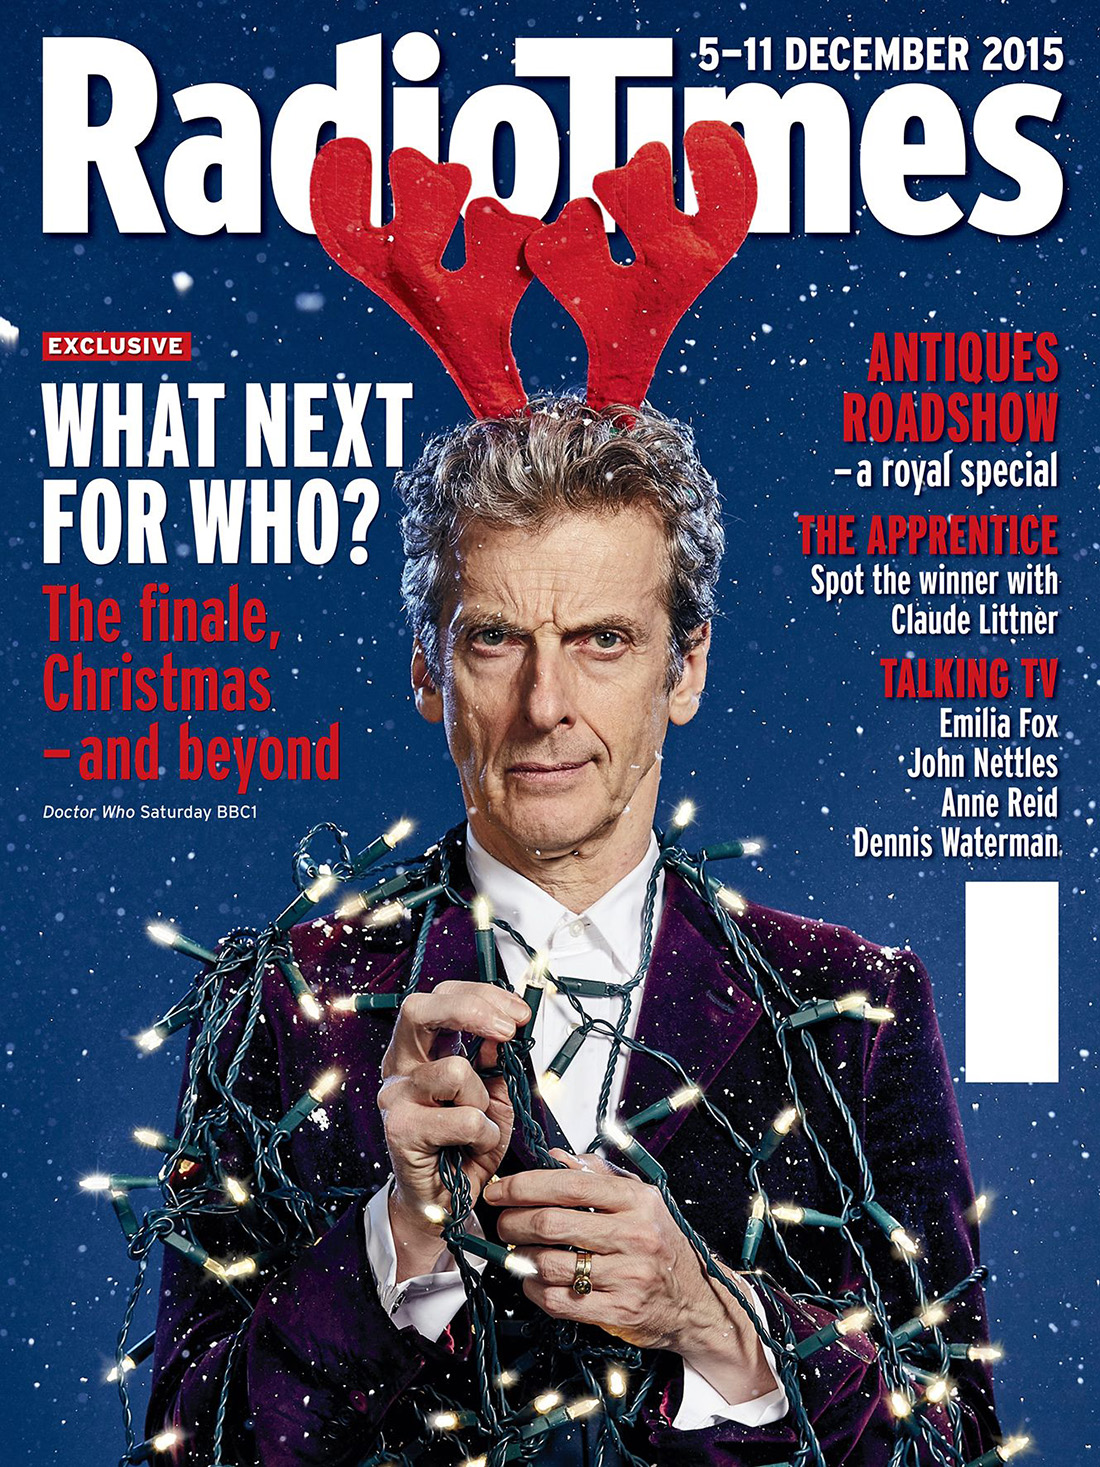 Doctor Who Radio Times. 2003 to present day. Rtimesdec2015l